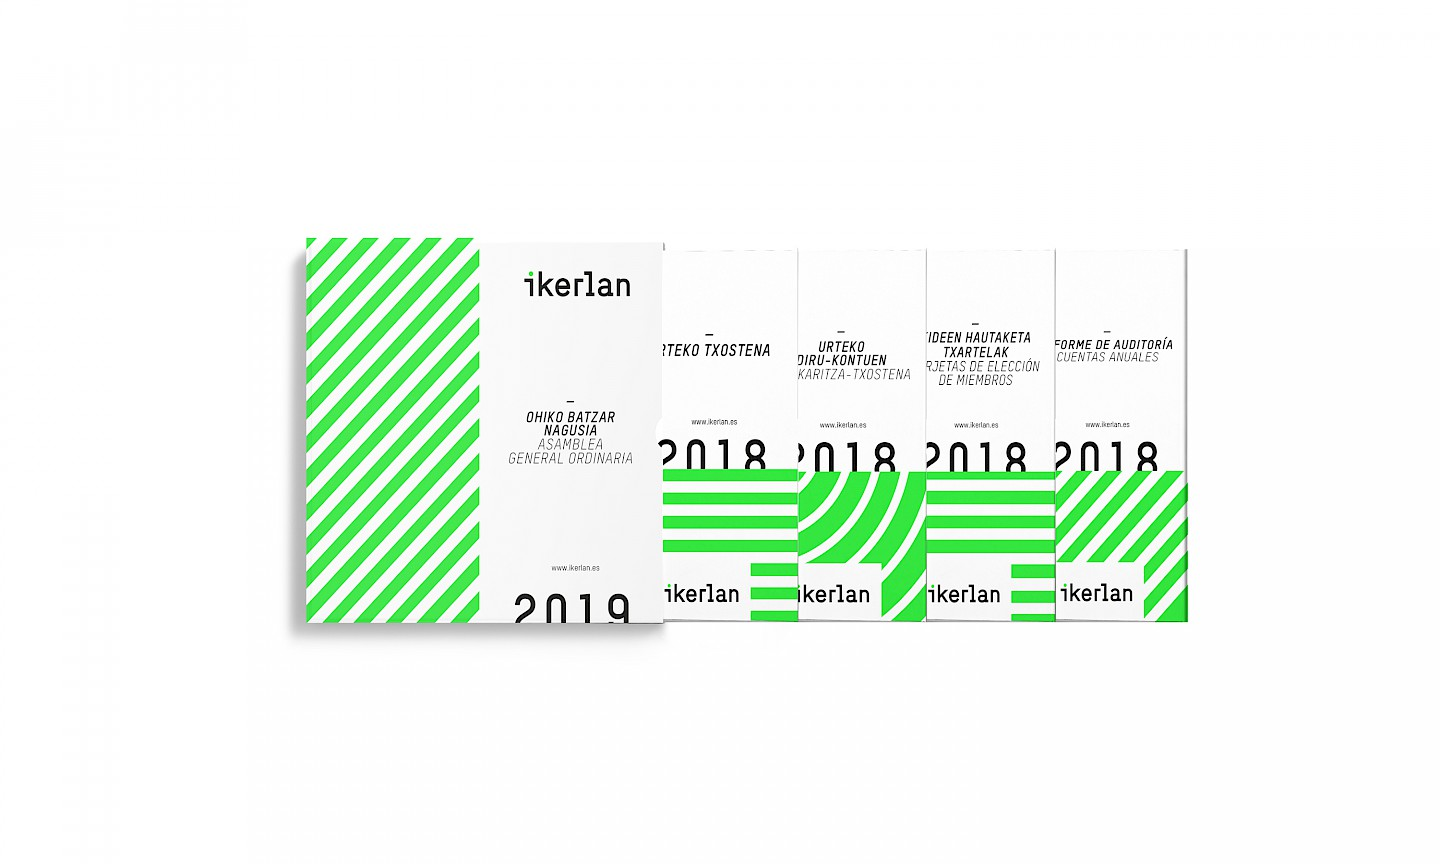 branding design ikerlan editorial_1 technology move